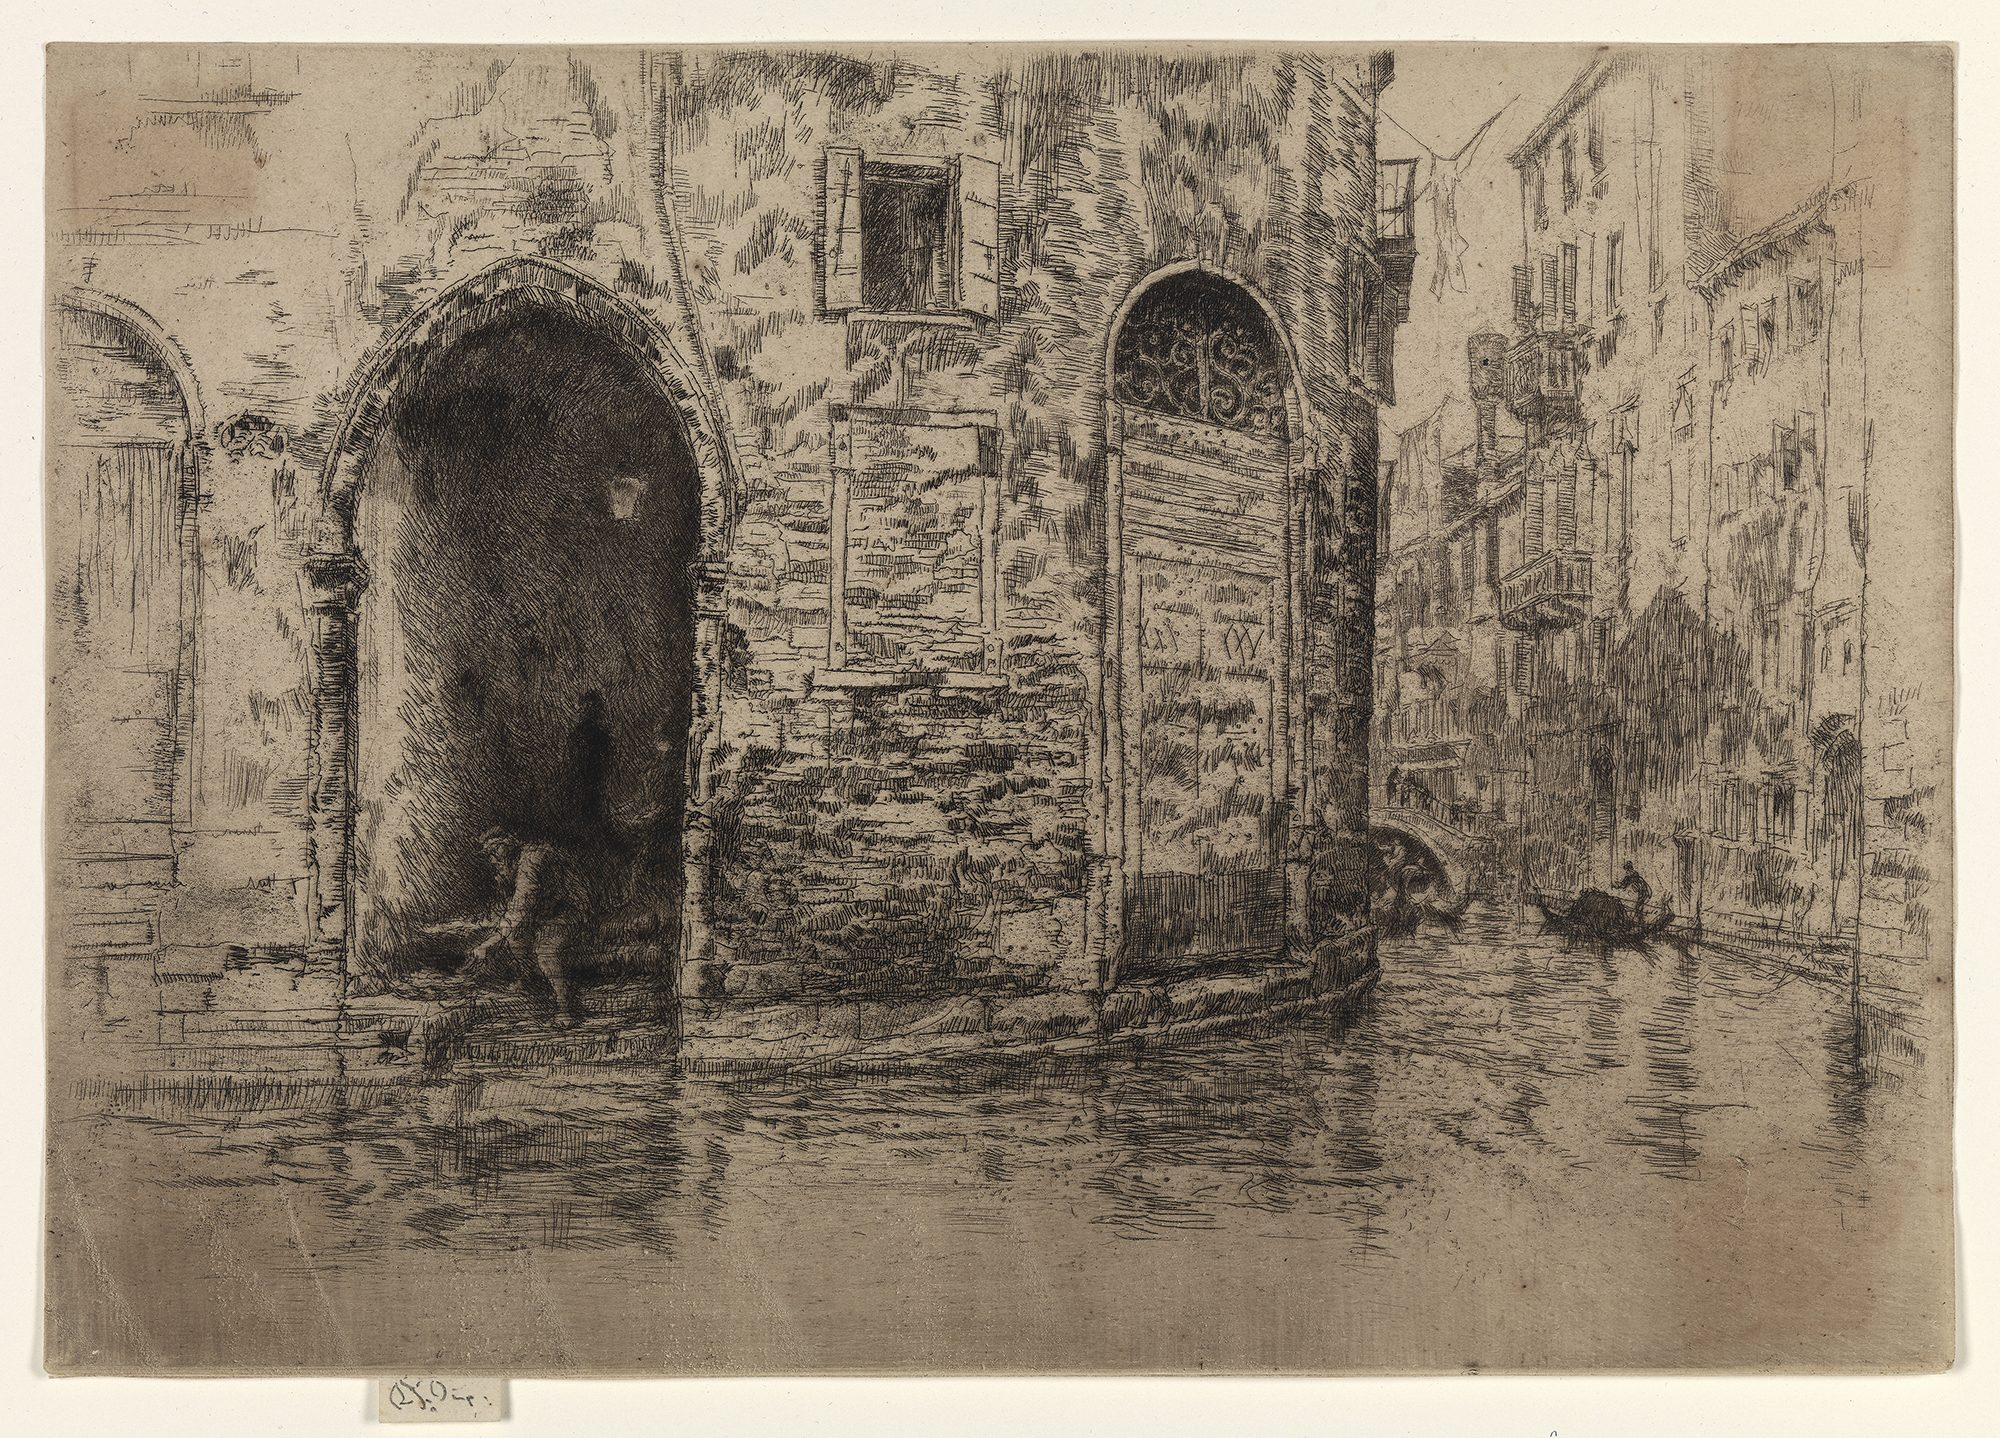 James Abbott McNeill Whistler, The Two Doorways (from